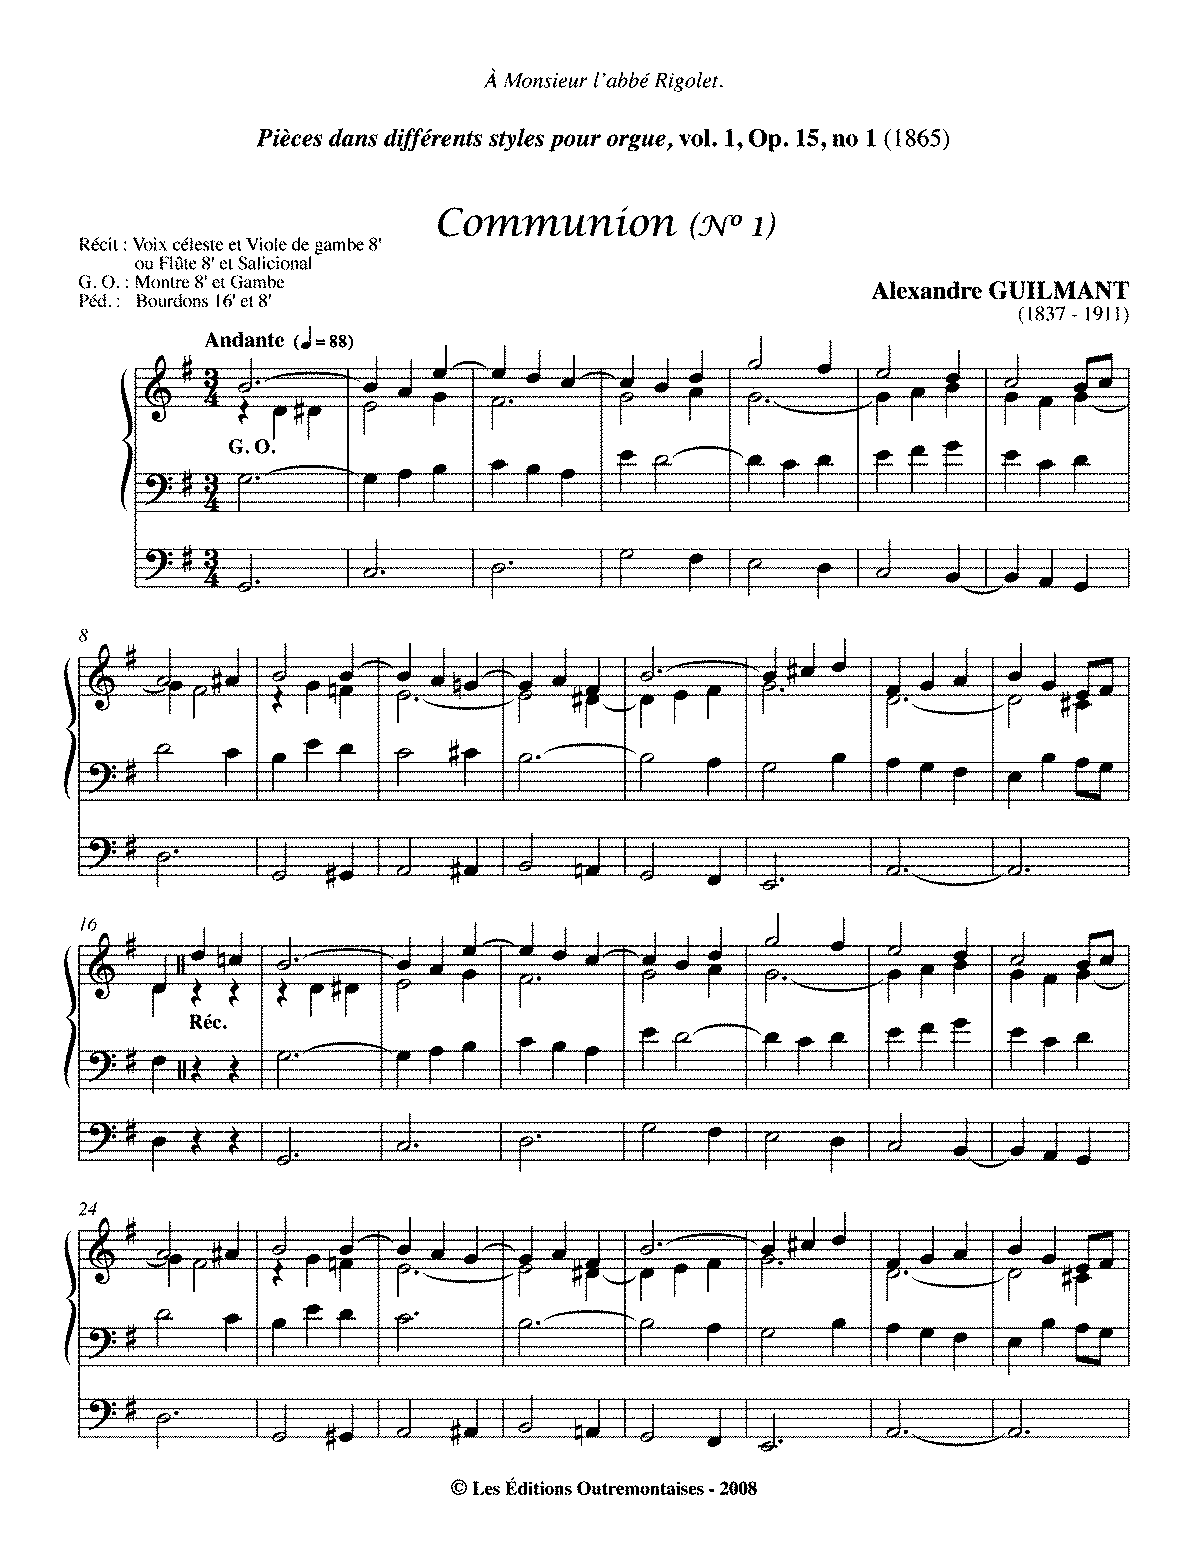 WIMA.0689-Guilmant Communion Op.15.pdf